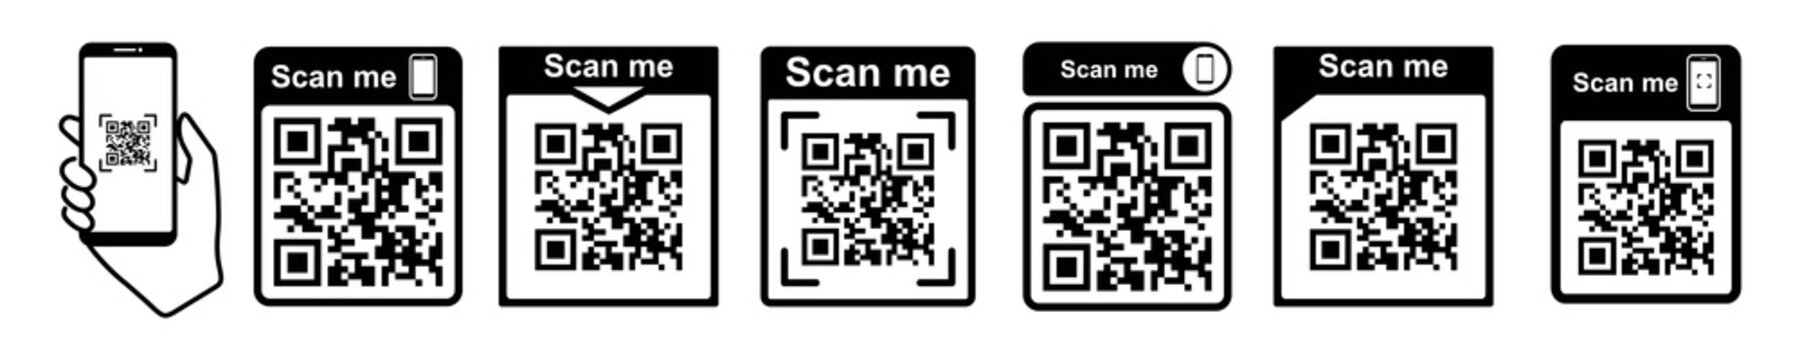 QR code scan icon with smartphone, scan me Qr code for payment, Vector illustration.